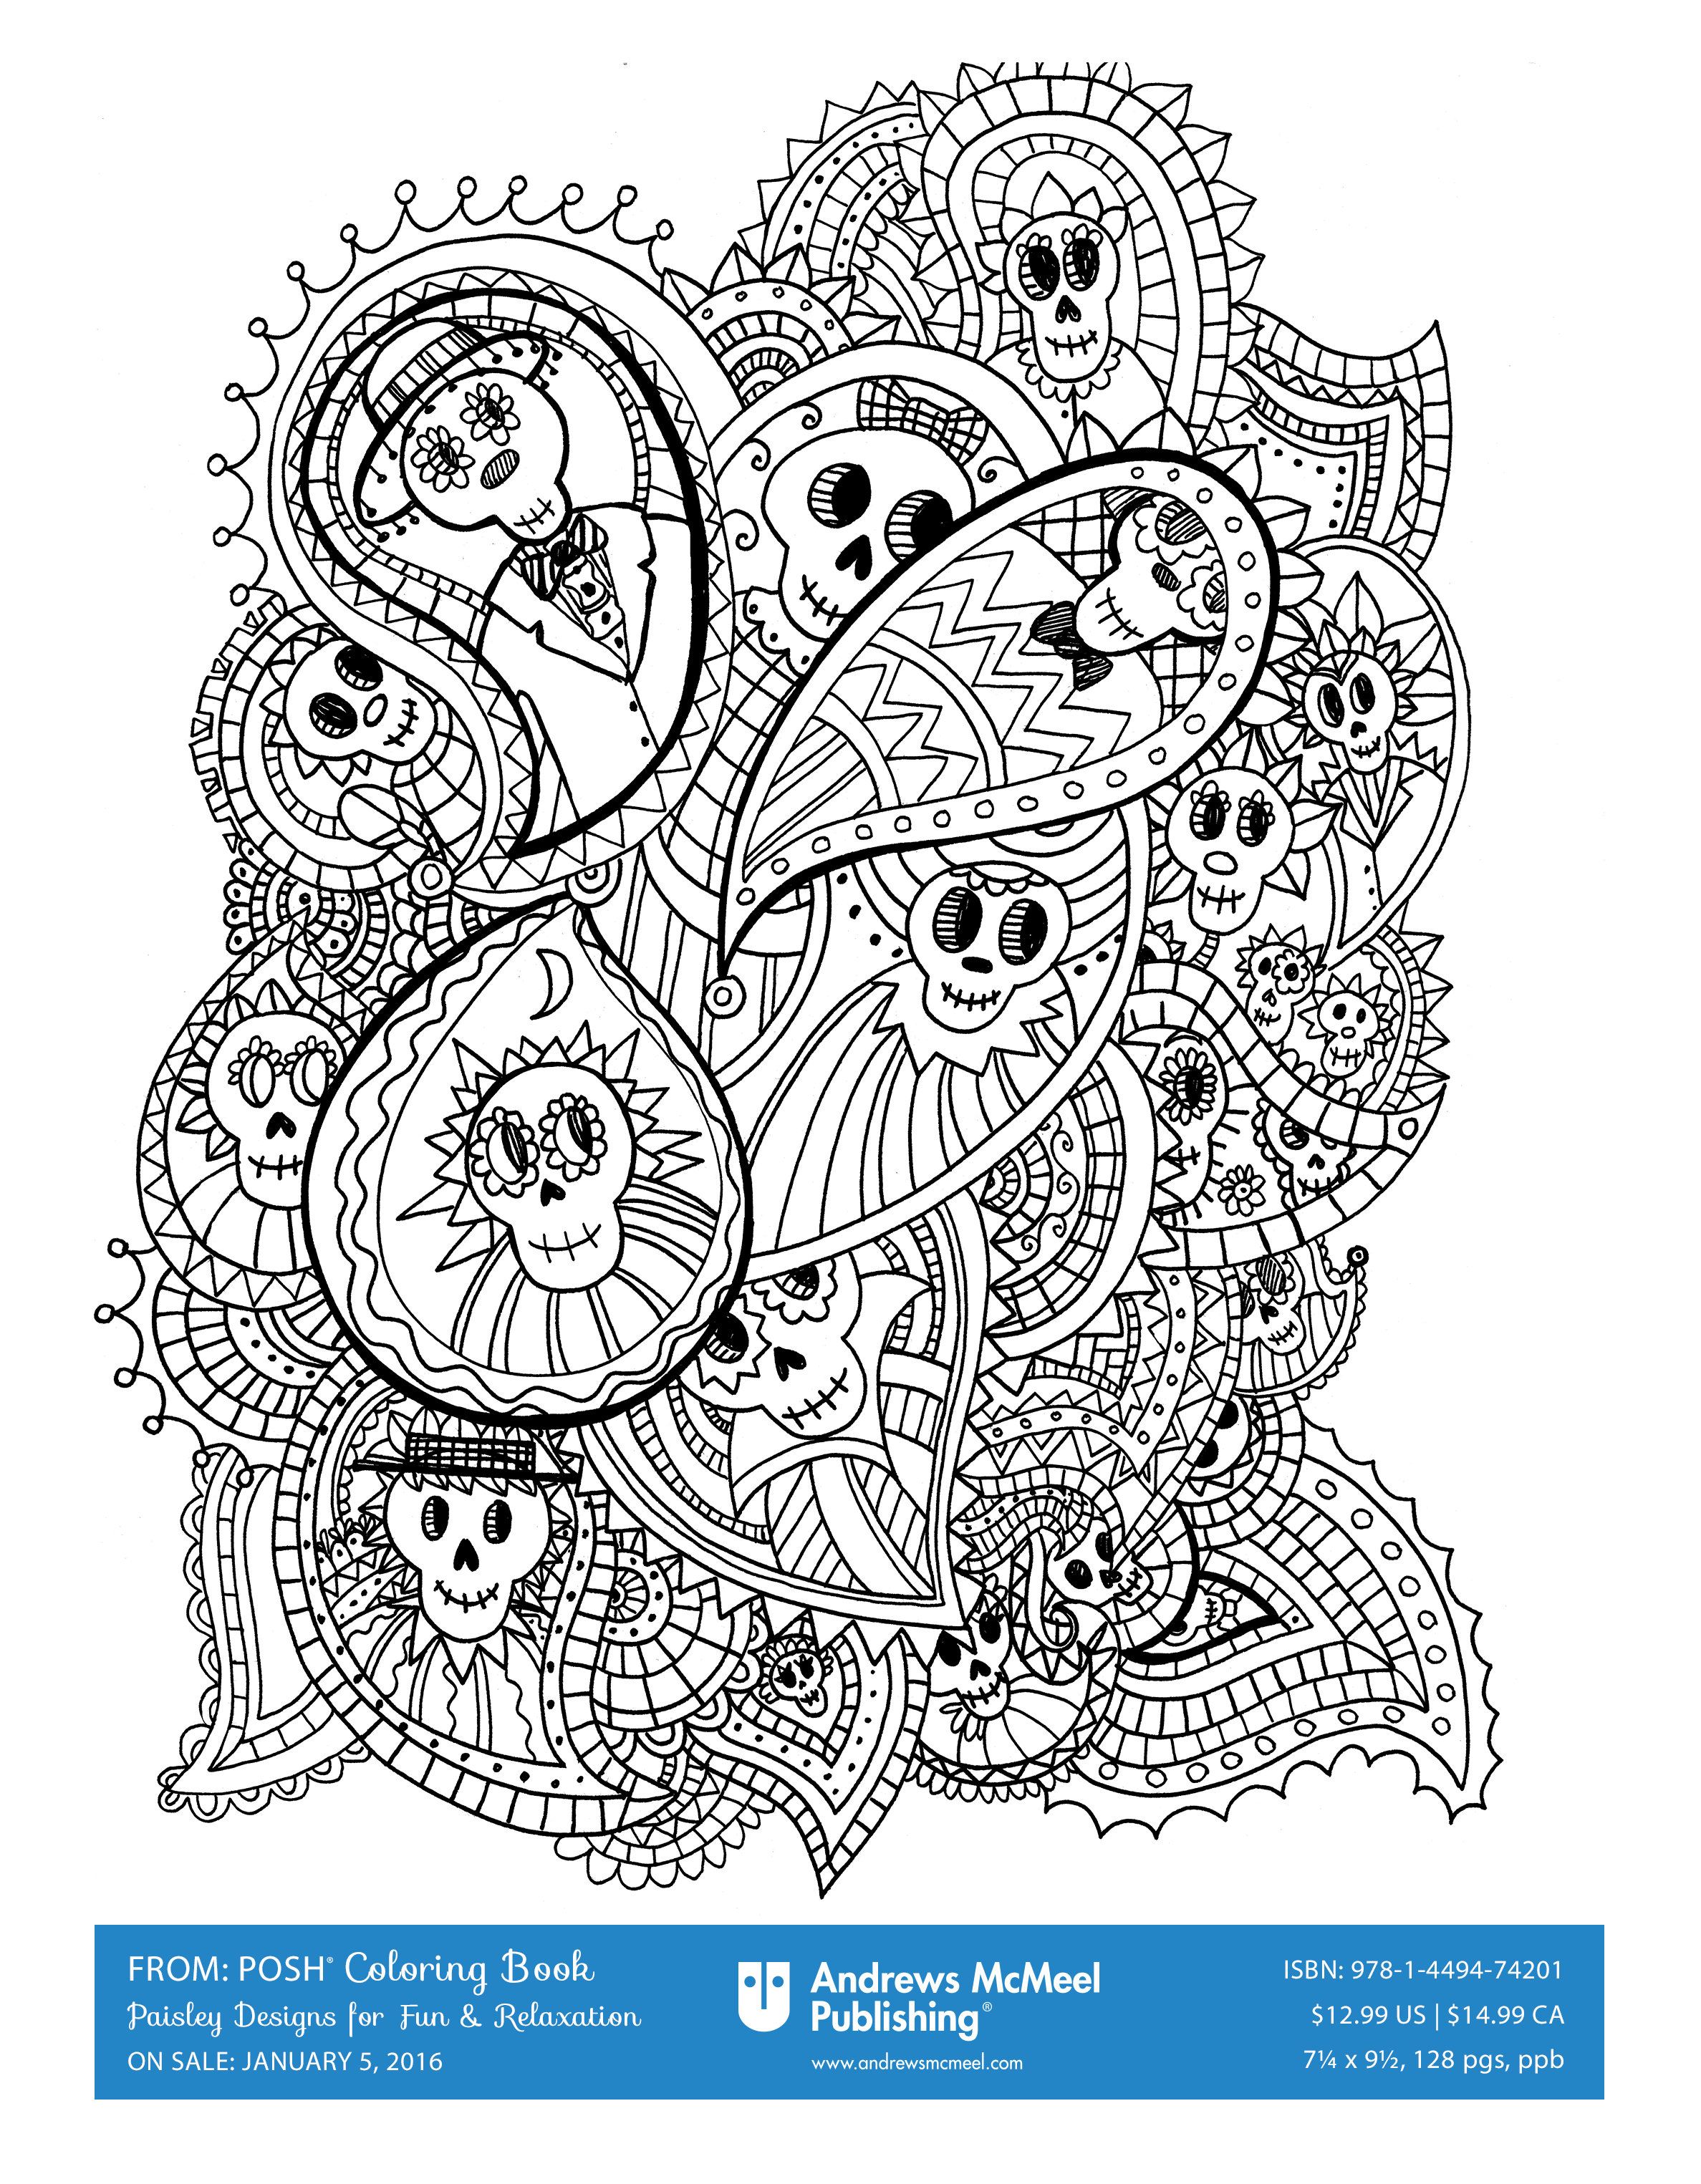 We Are Loving These Halloween Coloring Pages From Posh Adult Books